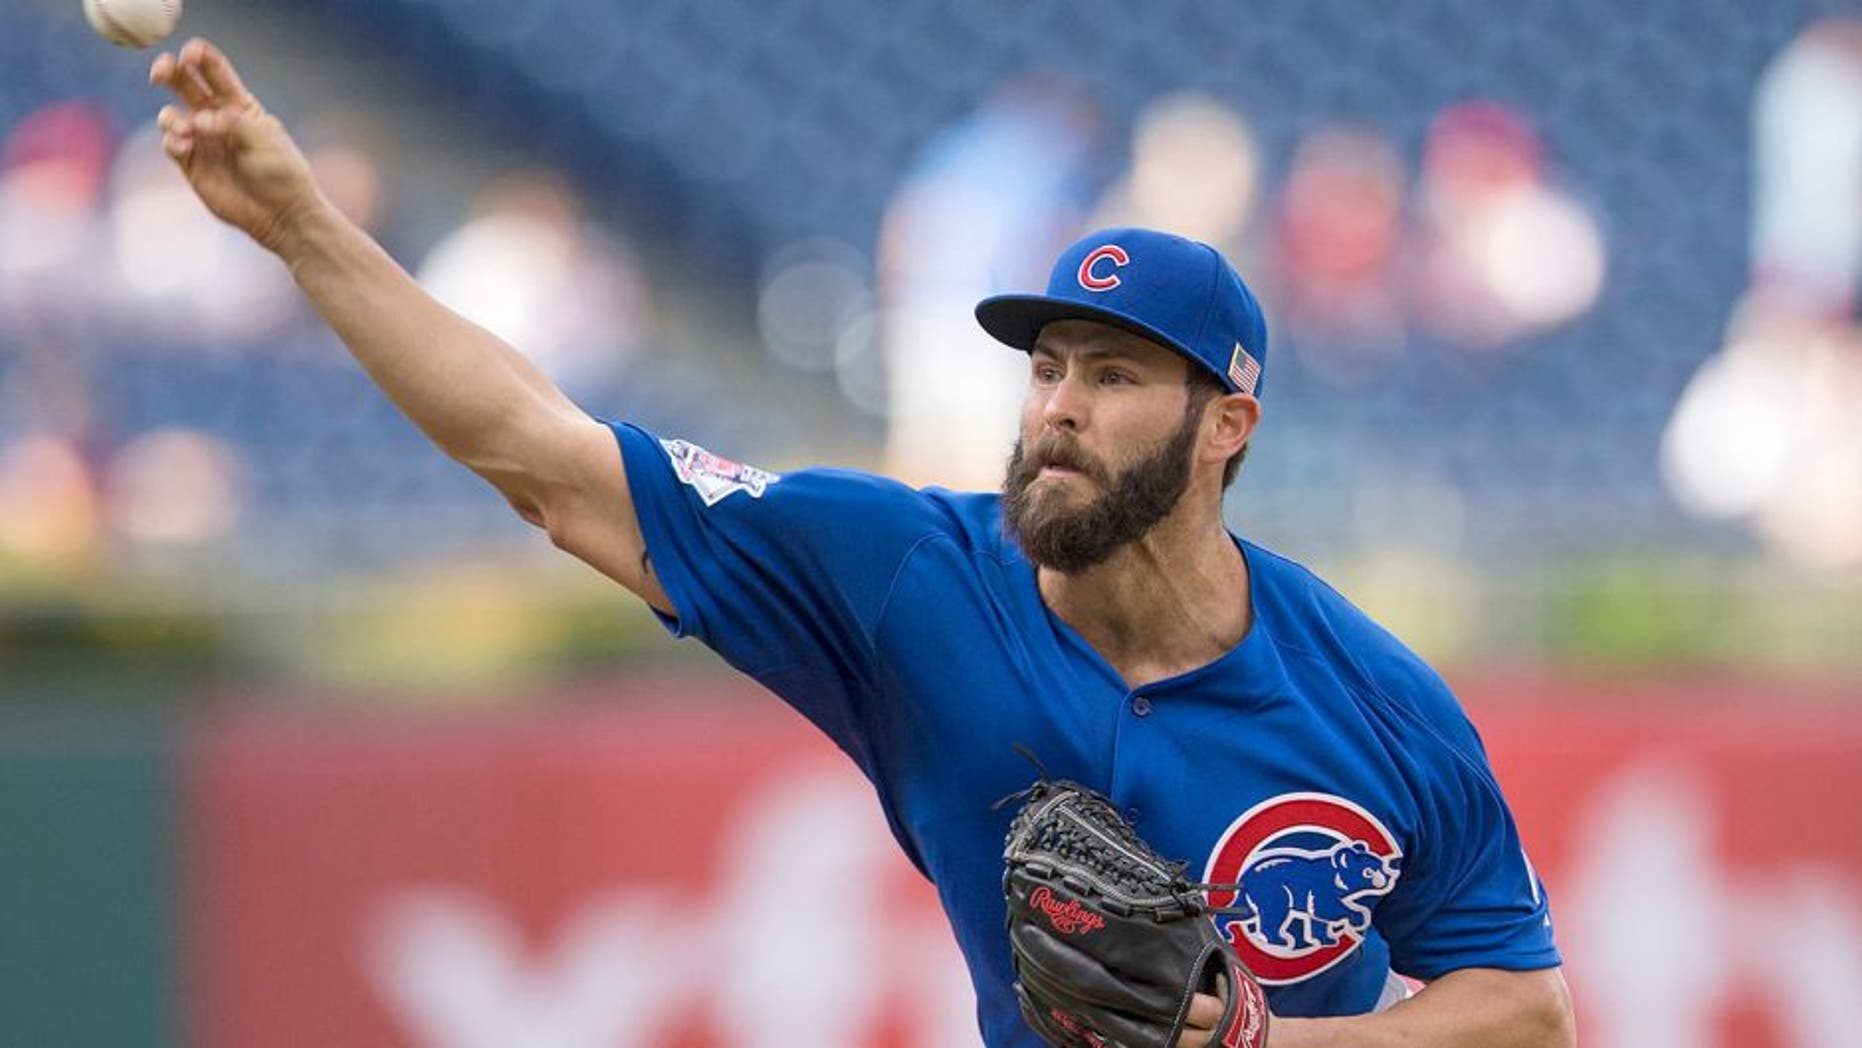 PHILADELPHIA, PA - SEPTEMBER 11: Jake Arrieta #49 of the Chicago Cubs throws a pitch in the bottom of the first inning against the Philadelphia Phillies on September 11, 2015 at Citizens Bank Park in Philadelphia, Pennsylvania. (Photo by Mitchell Leff/Getty Images)